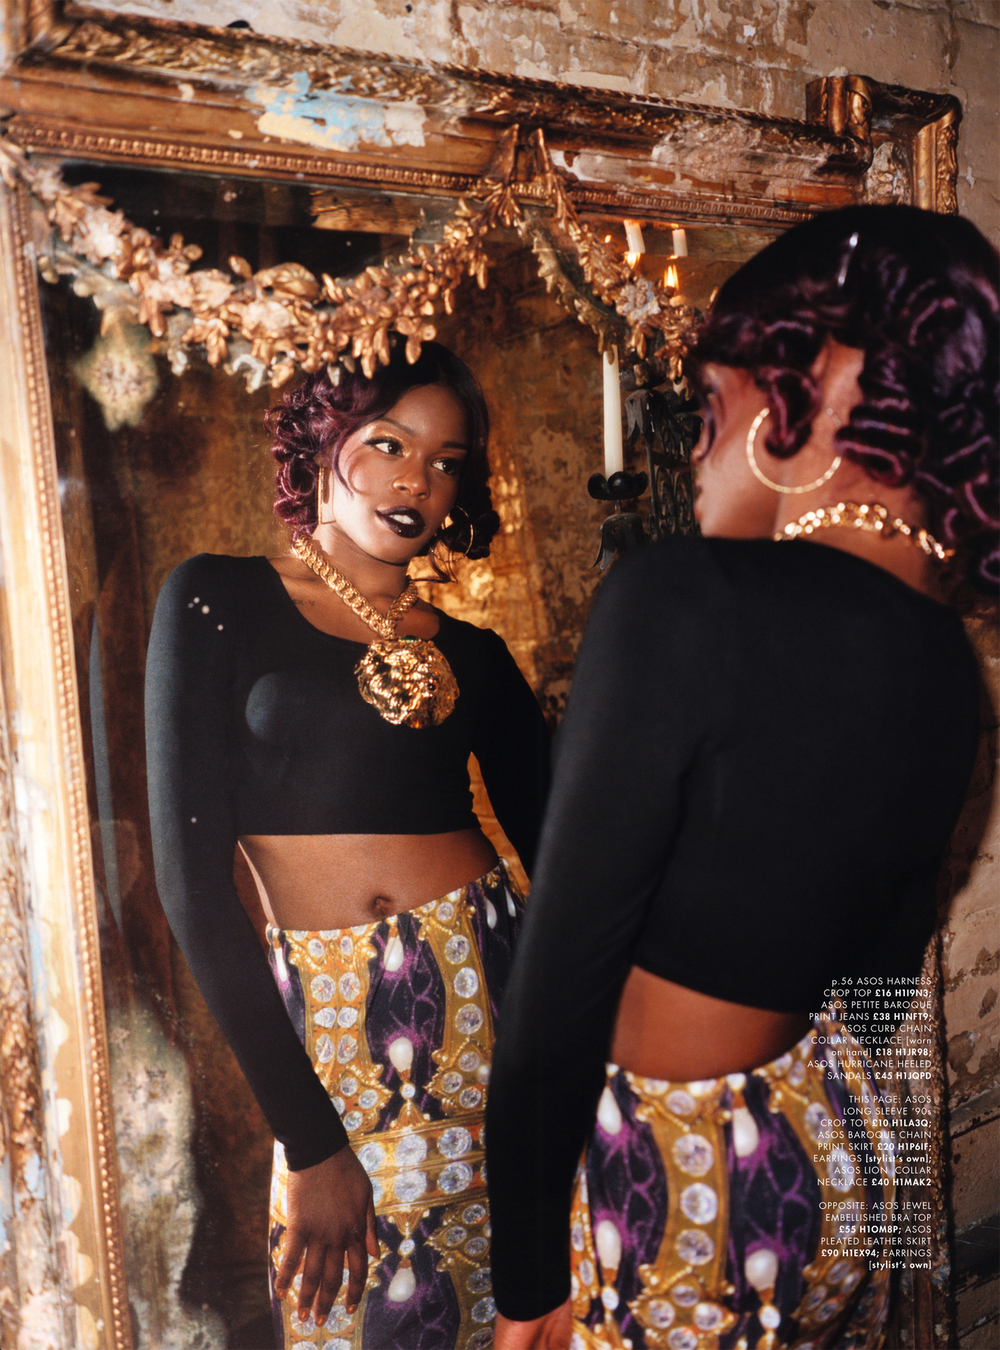 ASOS___Azealia_Tyrone_Lebon_January_2012-3.jpg